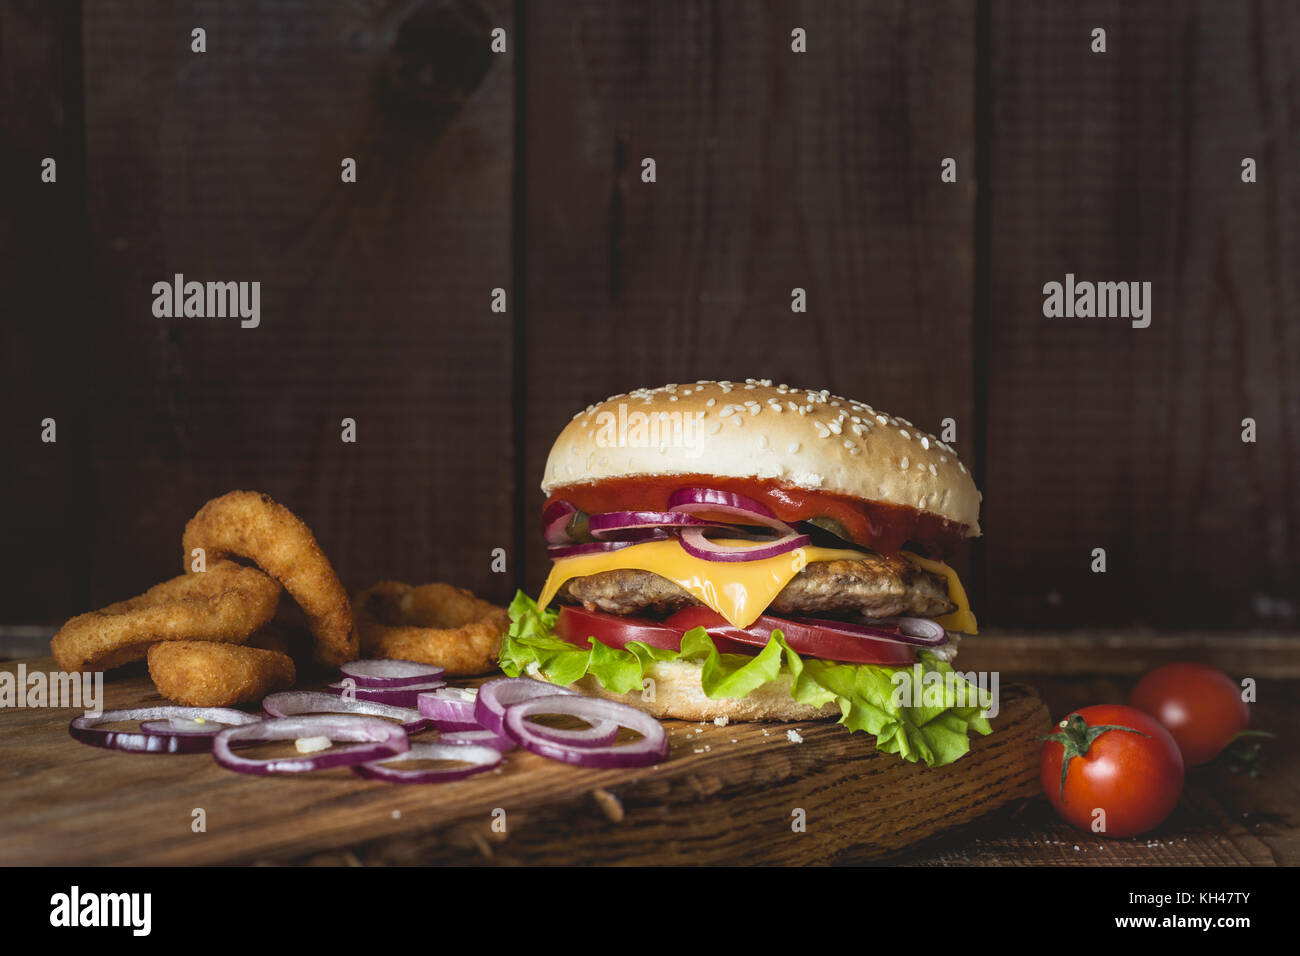 Cheeseburger and onion rings on wooden cutting board over wooden background. Closeup view with copy space for text - Stock Image